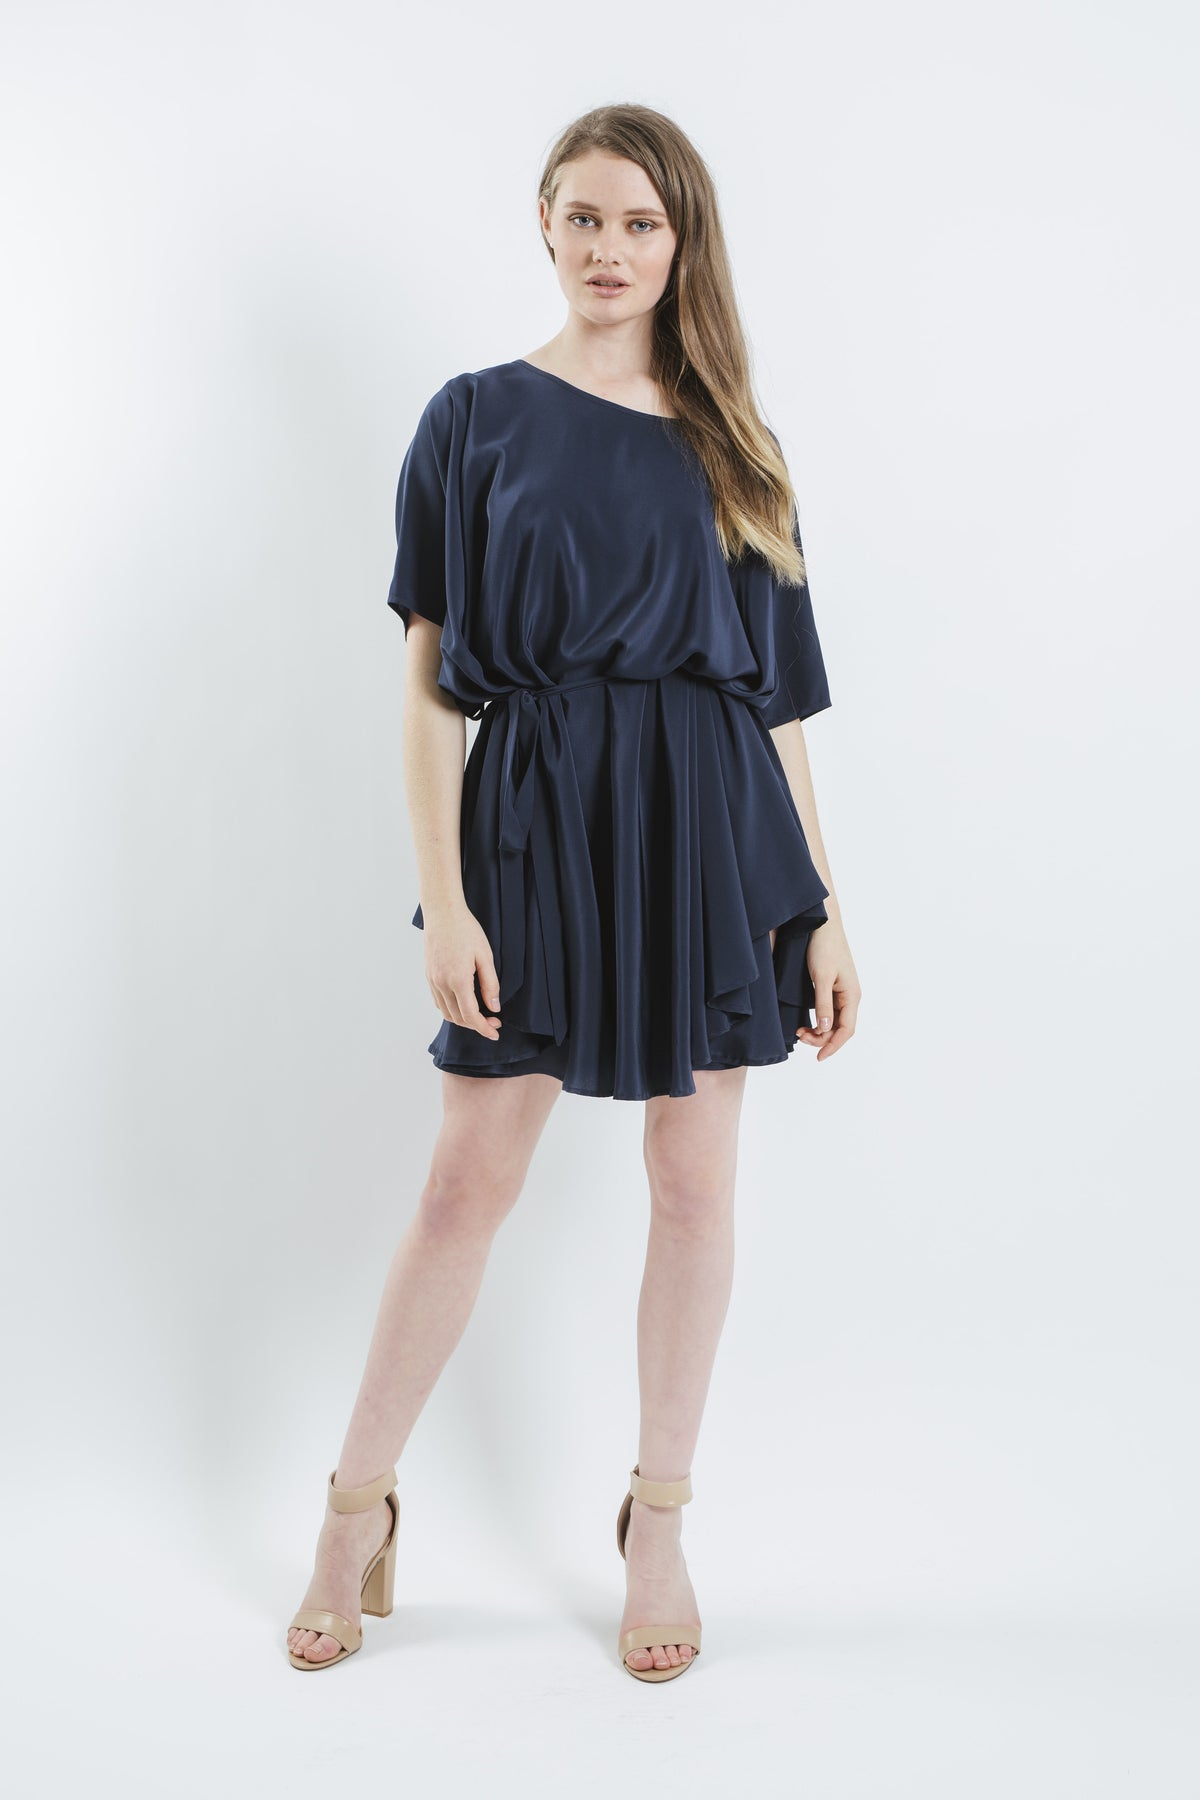 ef39b8698de Miss Crabb - Rise Dress Navy